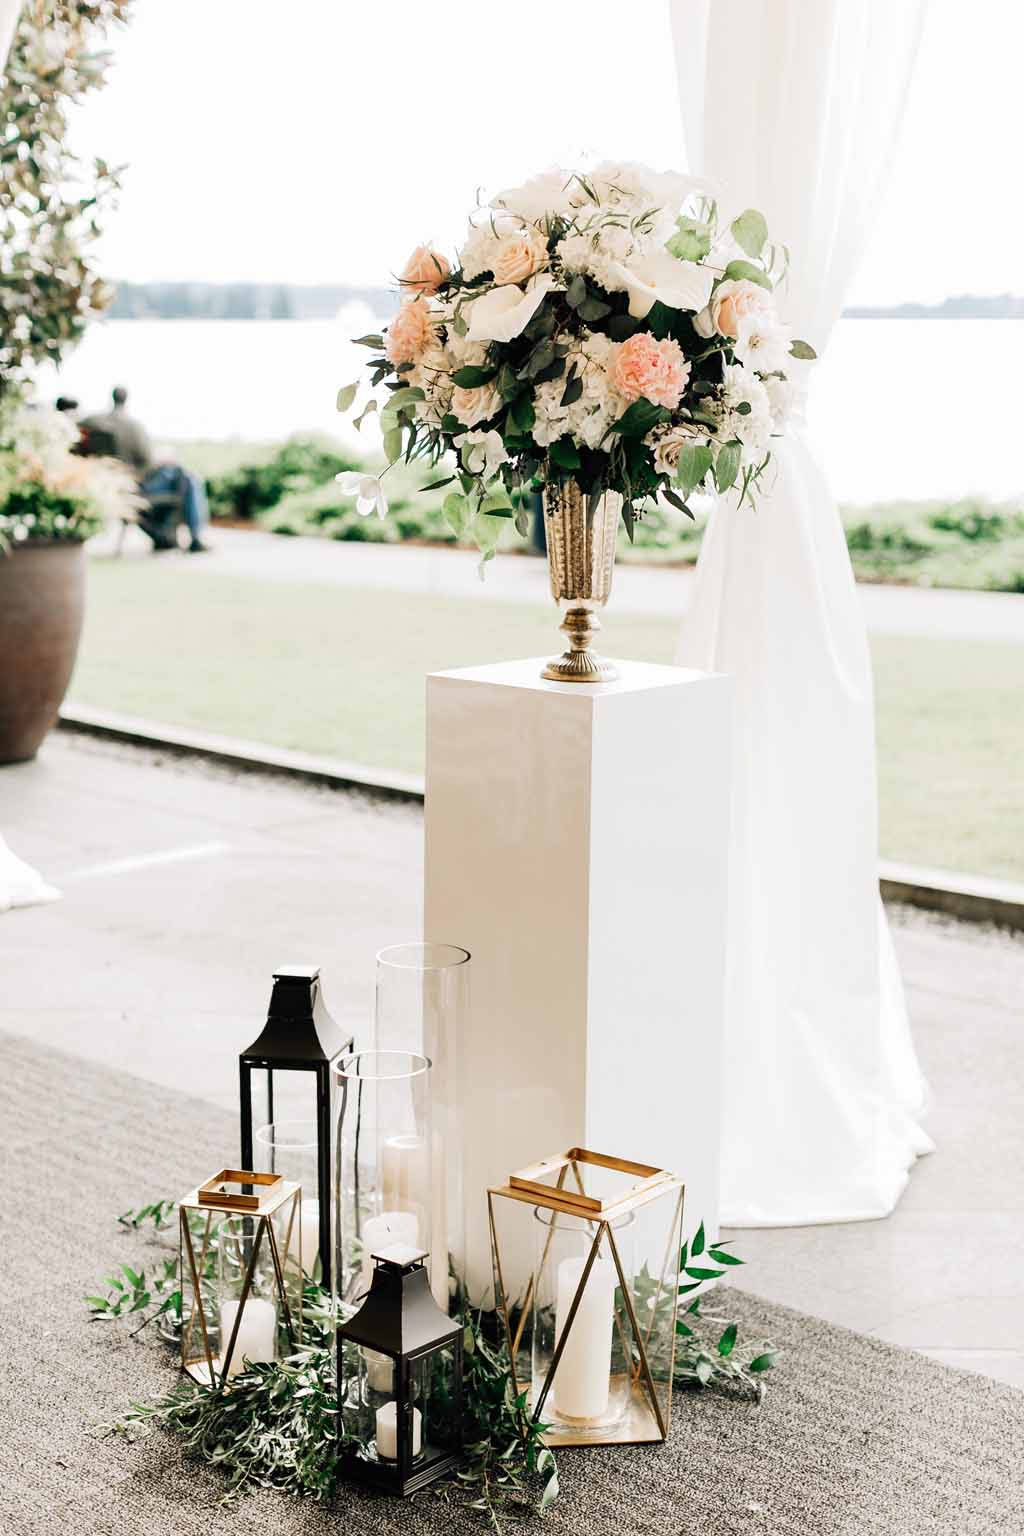 Wedding ceremony flowers  in gold urn, on top of white pedestal, with lanterns at base - Lake Washington Wedding